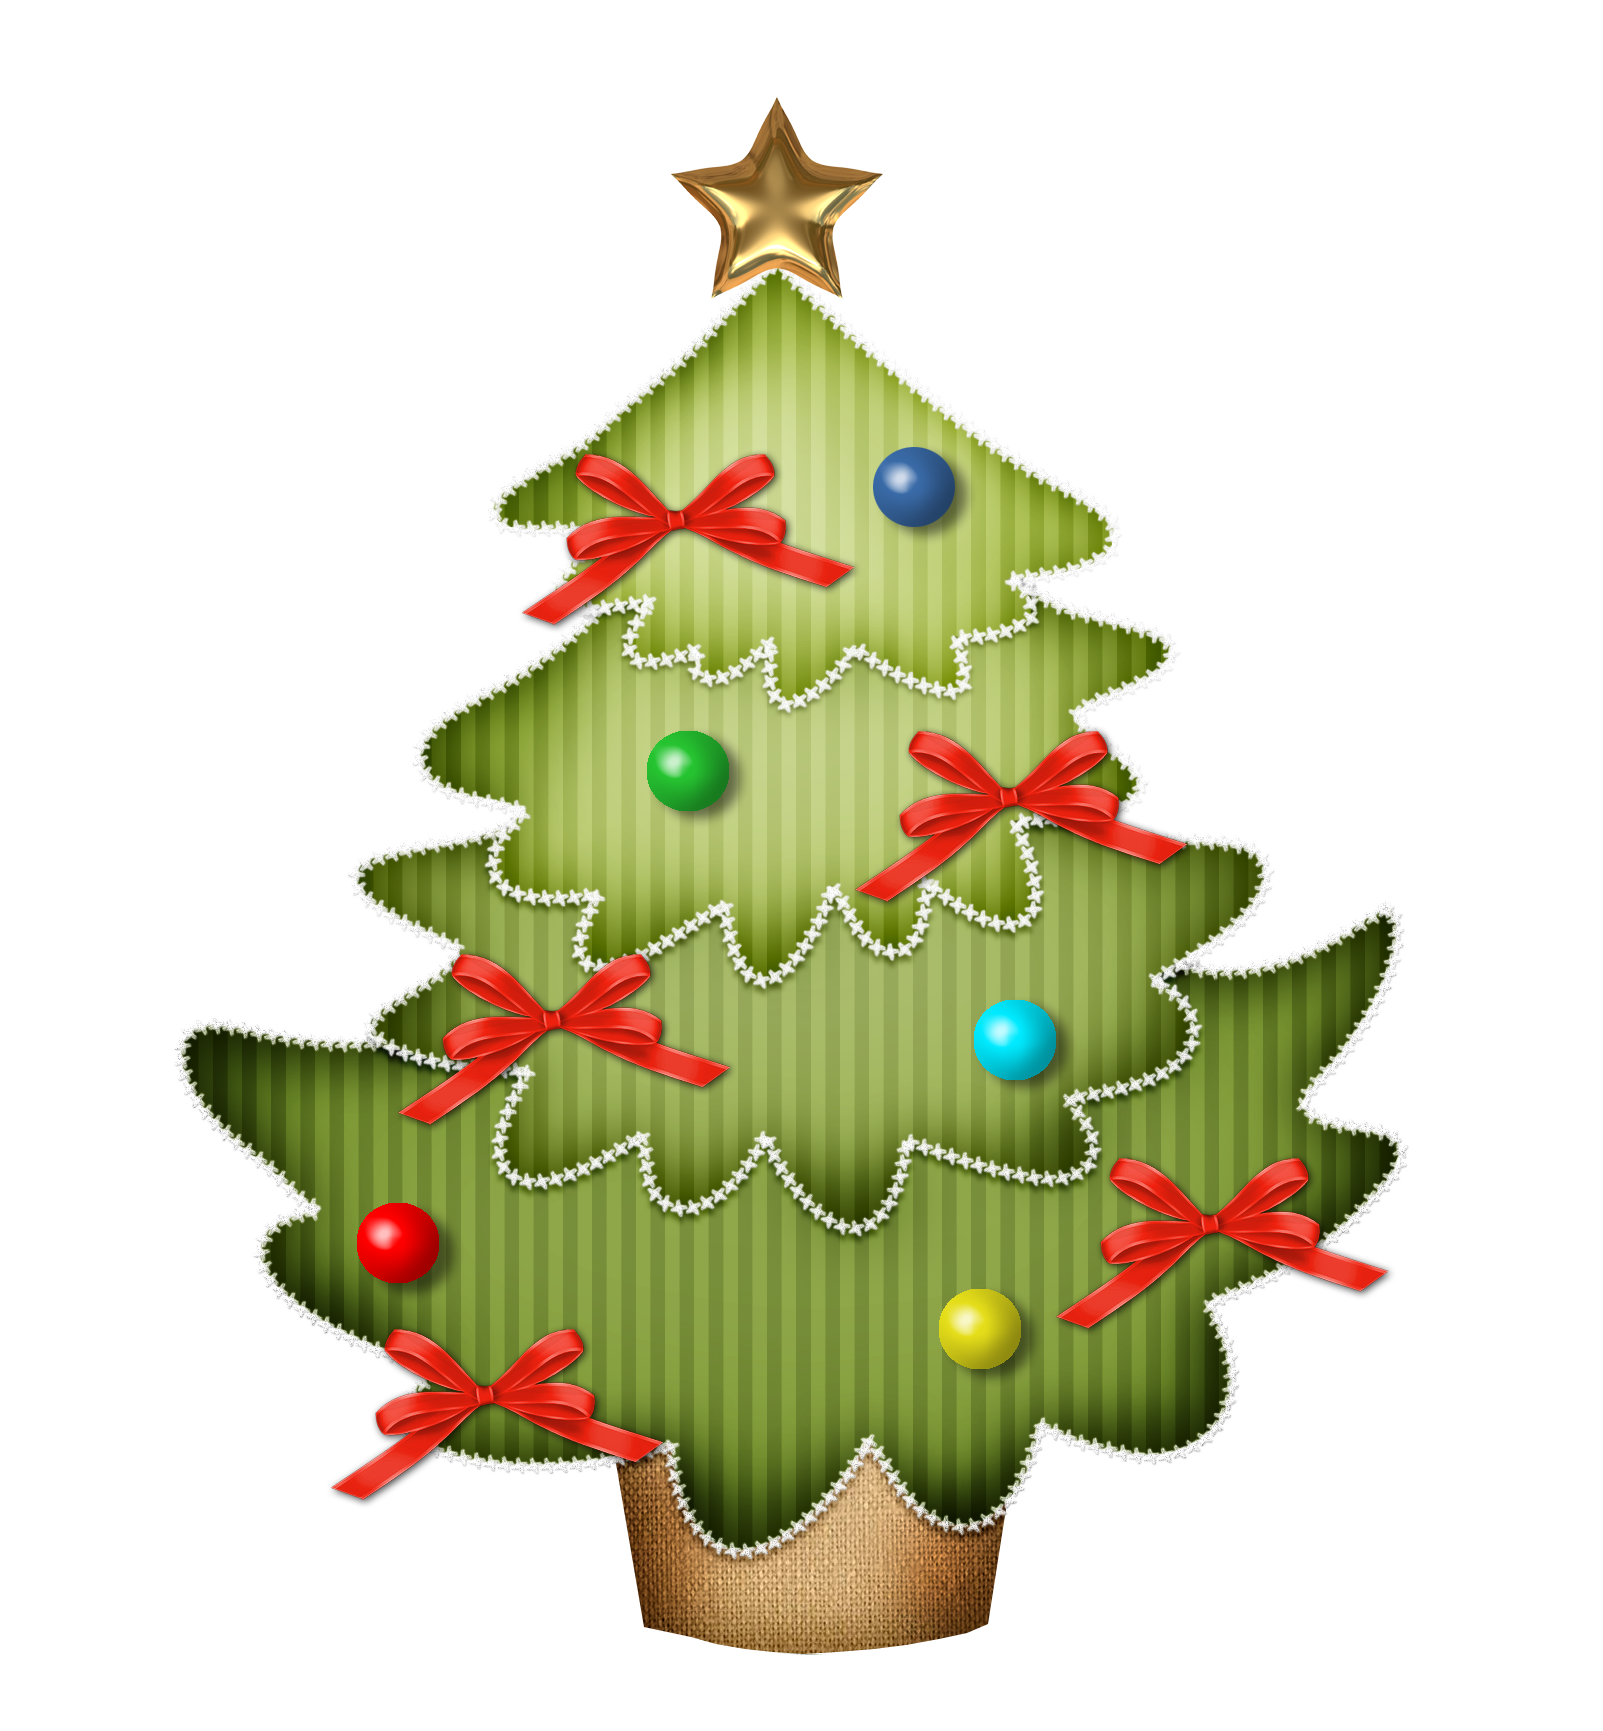 Snowman decorating christmas tree clipart png black and white stock CHRISTMAS TREE CLIP ART   CLIP ART - CHRISTMAS 1 - CLIPART ... png black and white stock